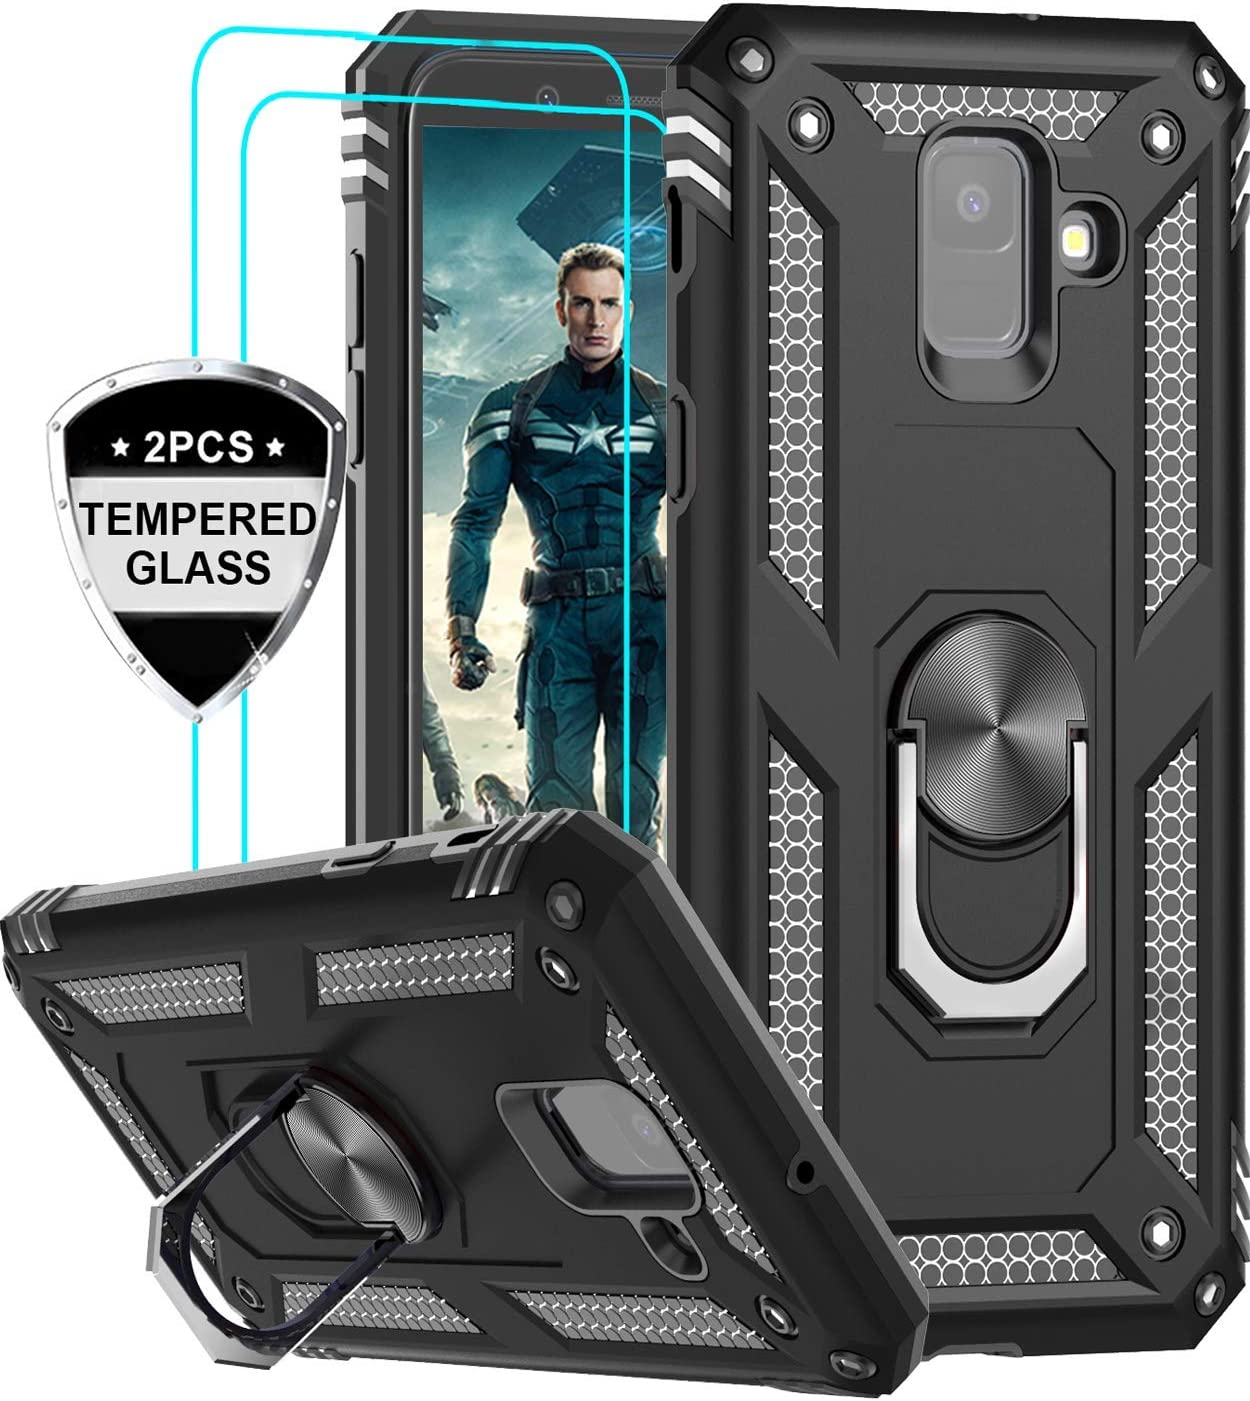 LeYi Samsung Galaxy A6 Case with Tempered Glass Screen Protector [2 Pack], [Military Grade] Defender Protective Phone Case with Magnetic Car Ring Holder Mount Kickstand for Samsung A6, JSFS Black